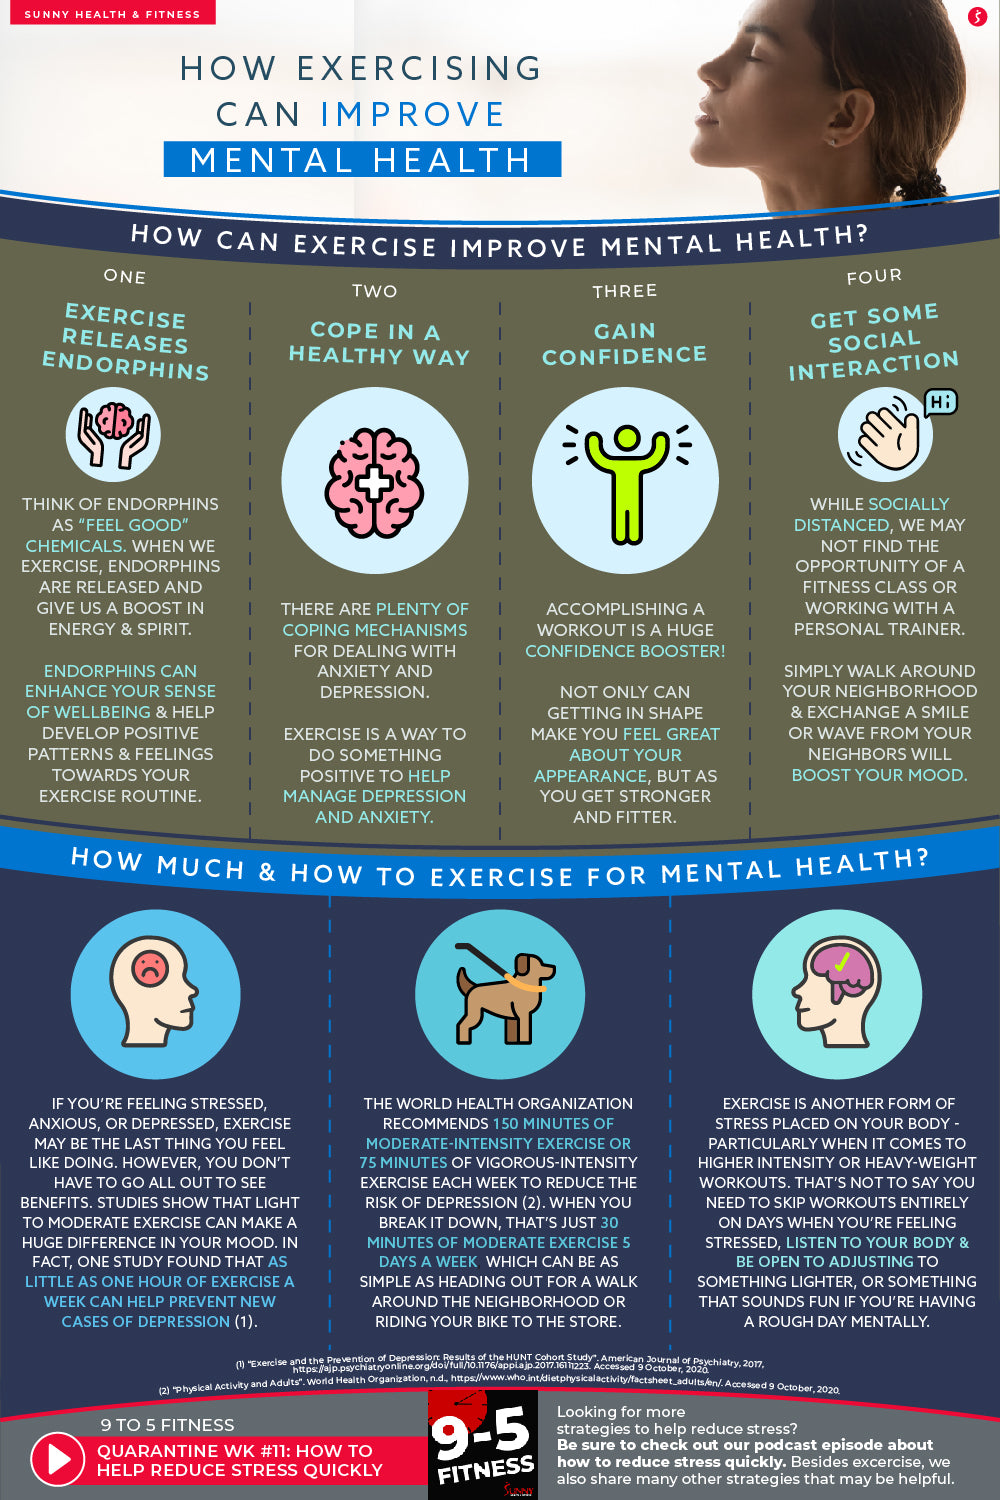 How Exercising Can Improve Mental Health Infographic